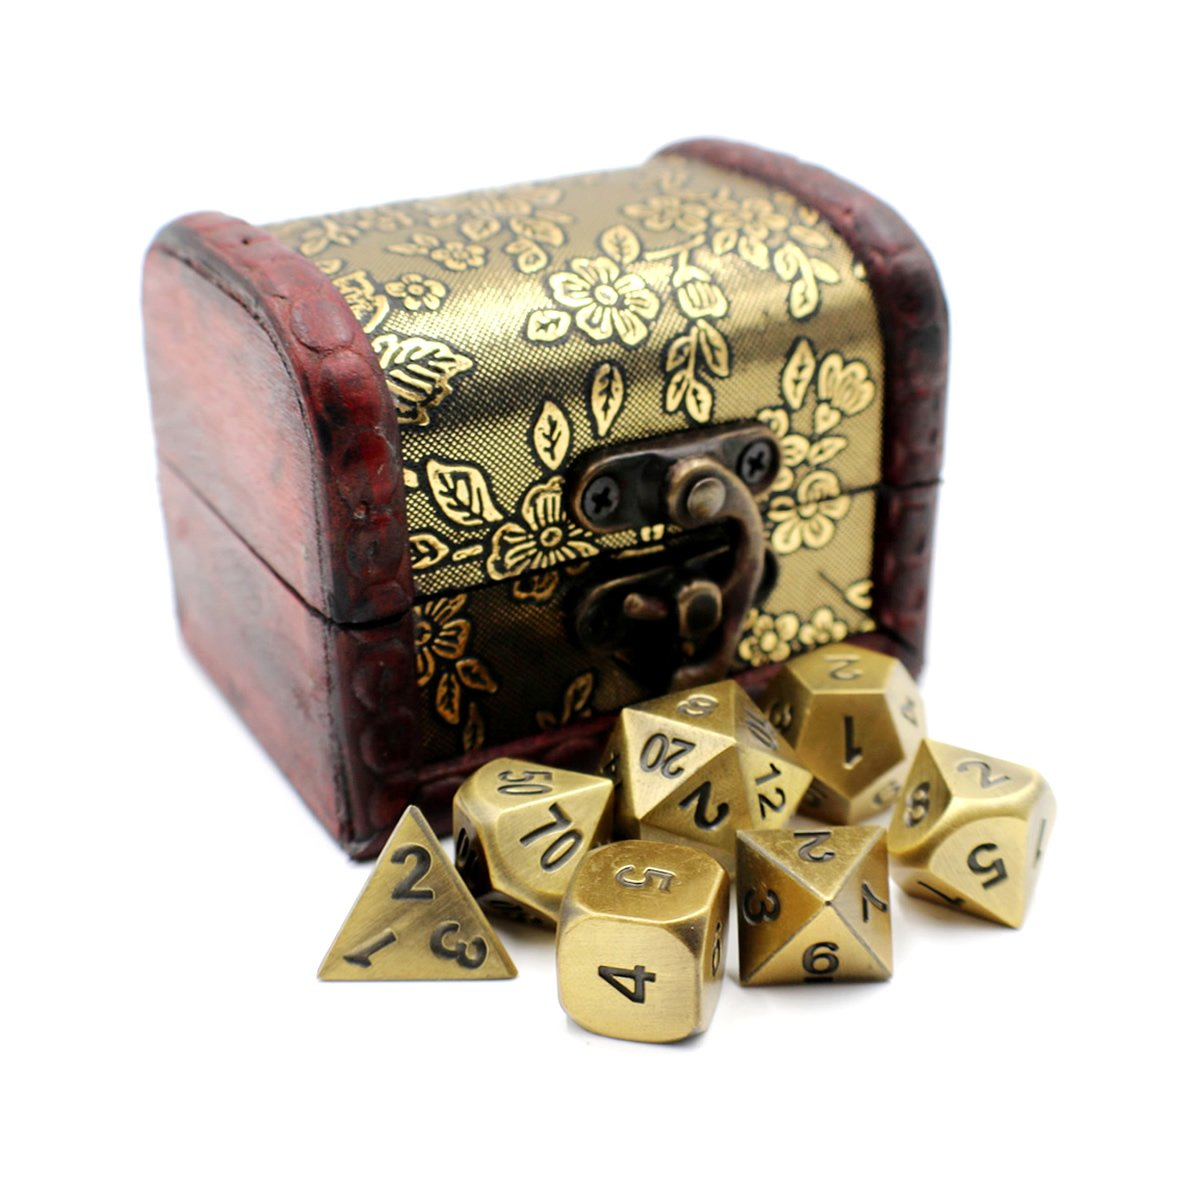 Metal DnD Dice Set with Gold Storage Chest / Box for Roleplaying Games